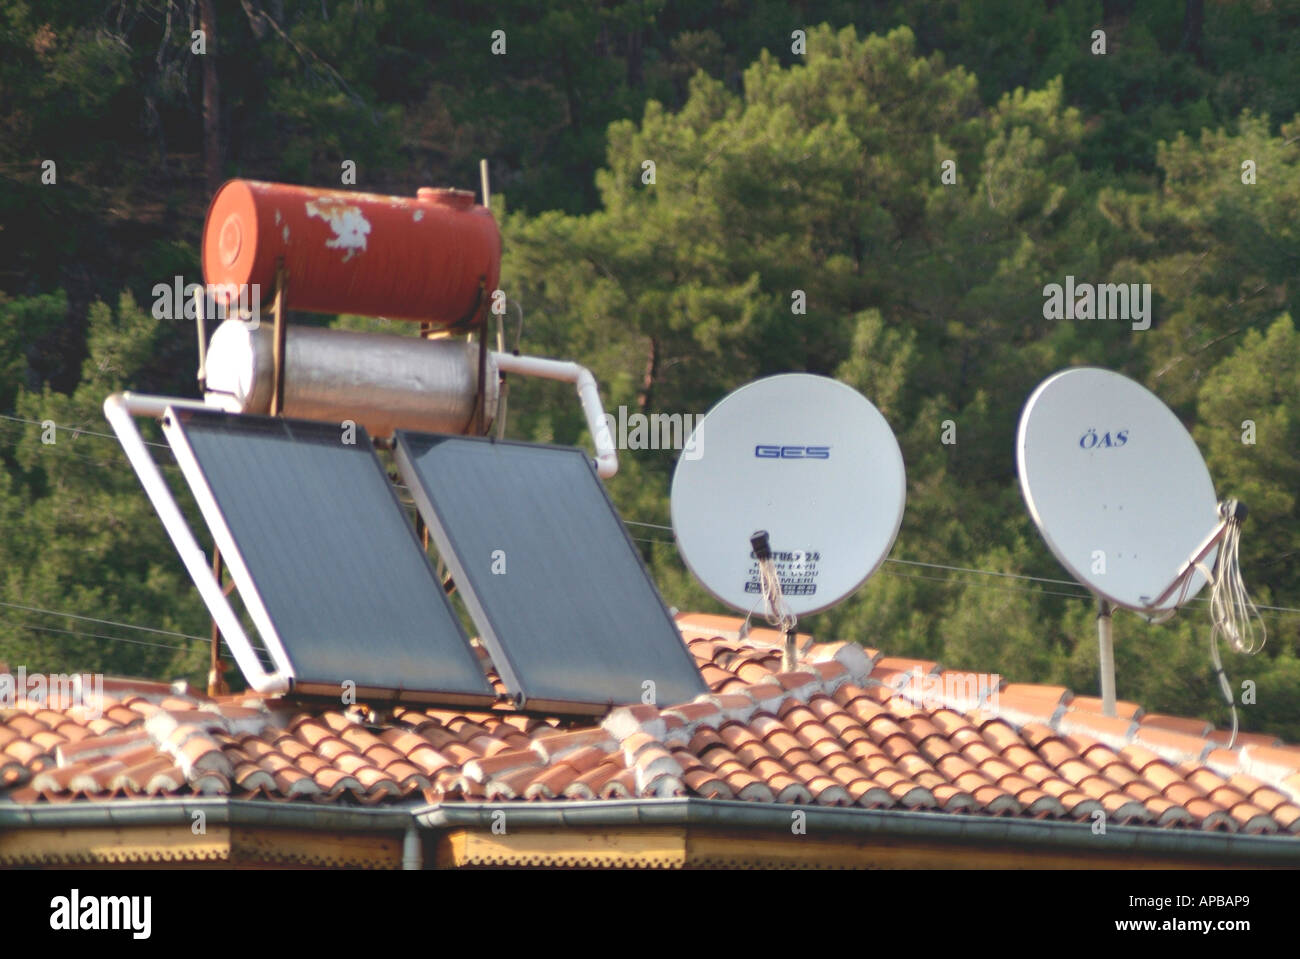 solar water heating panels on roof - Stock Image